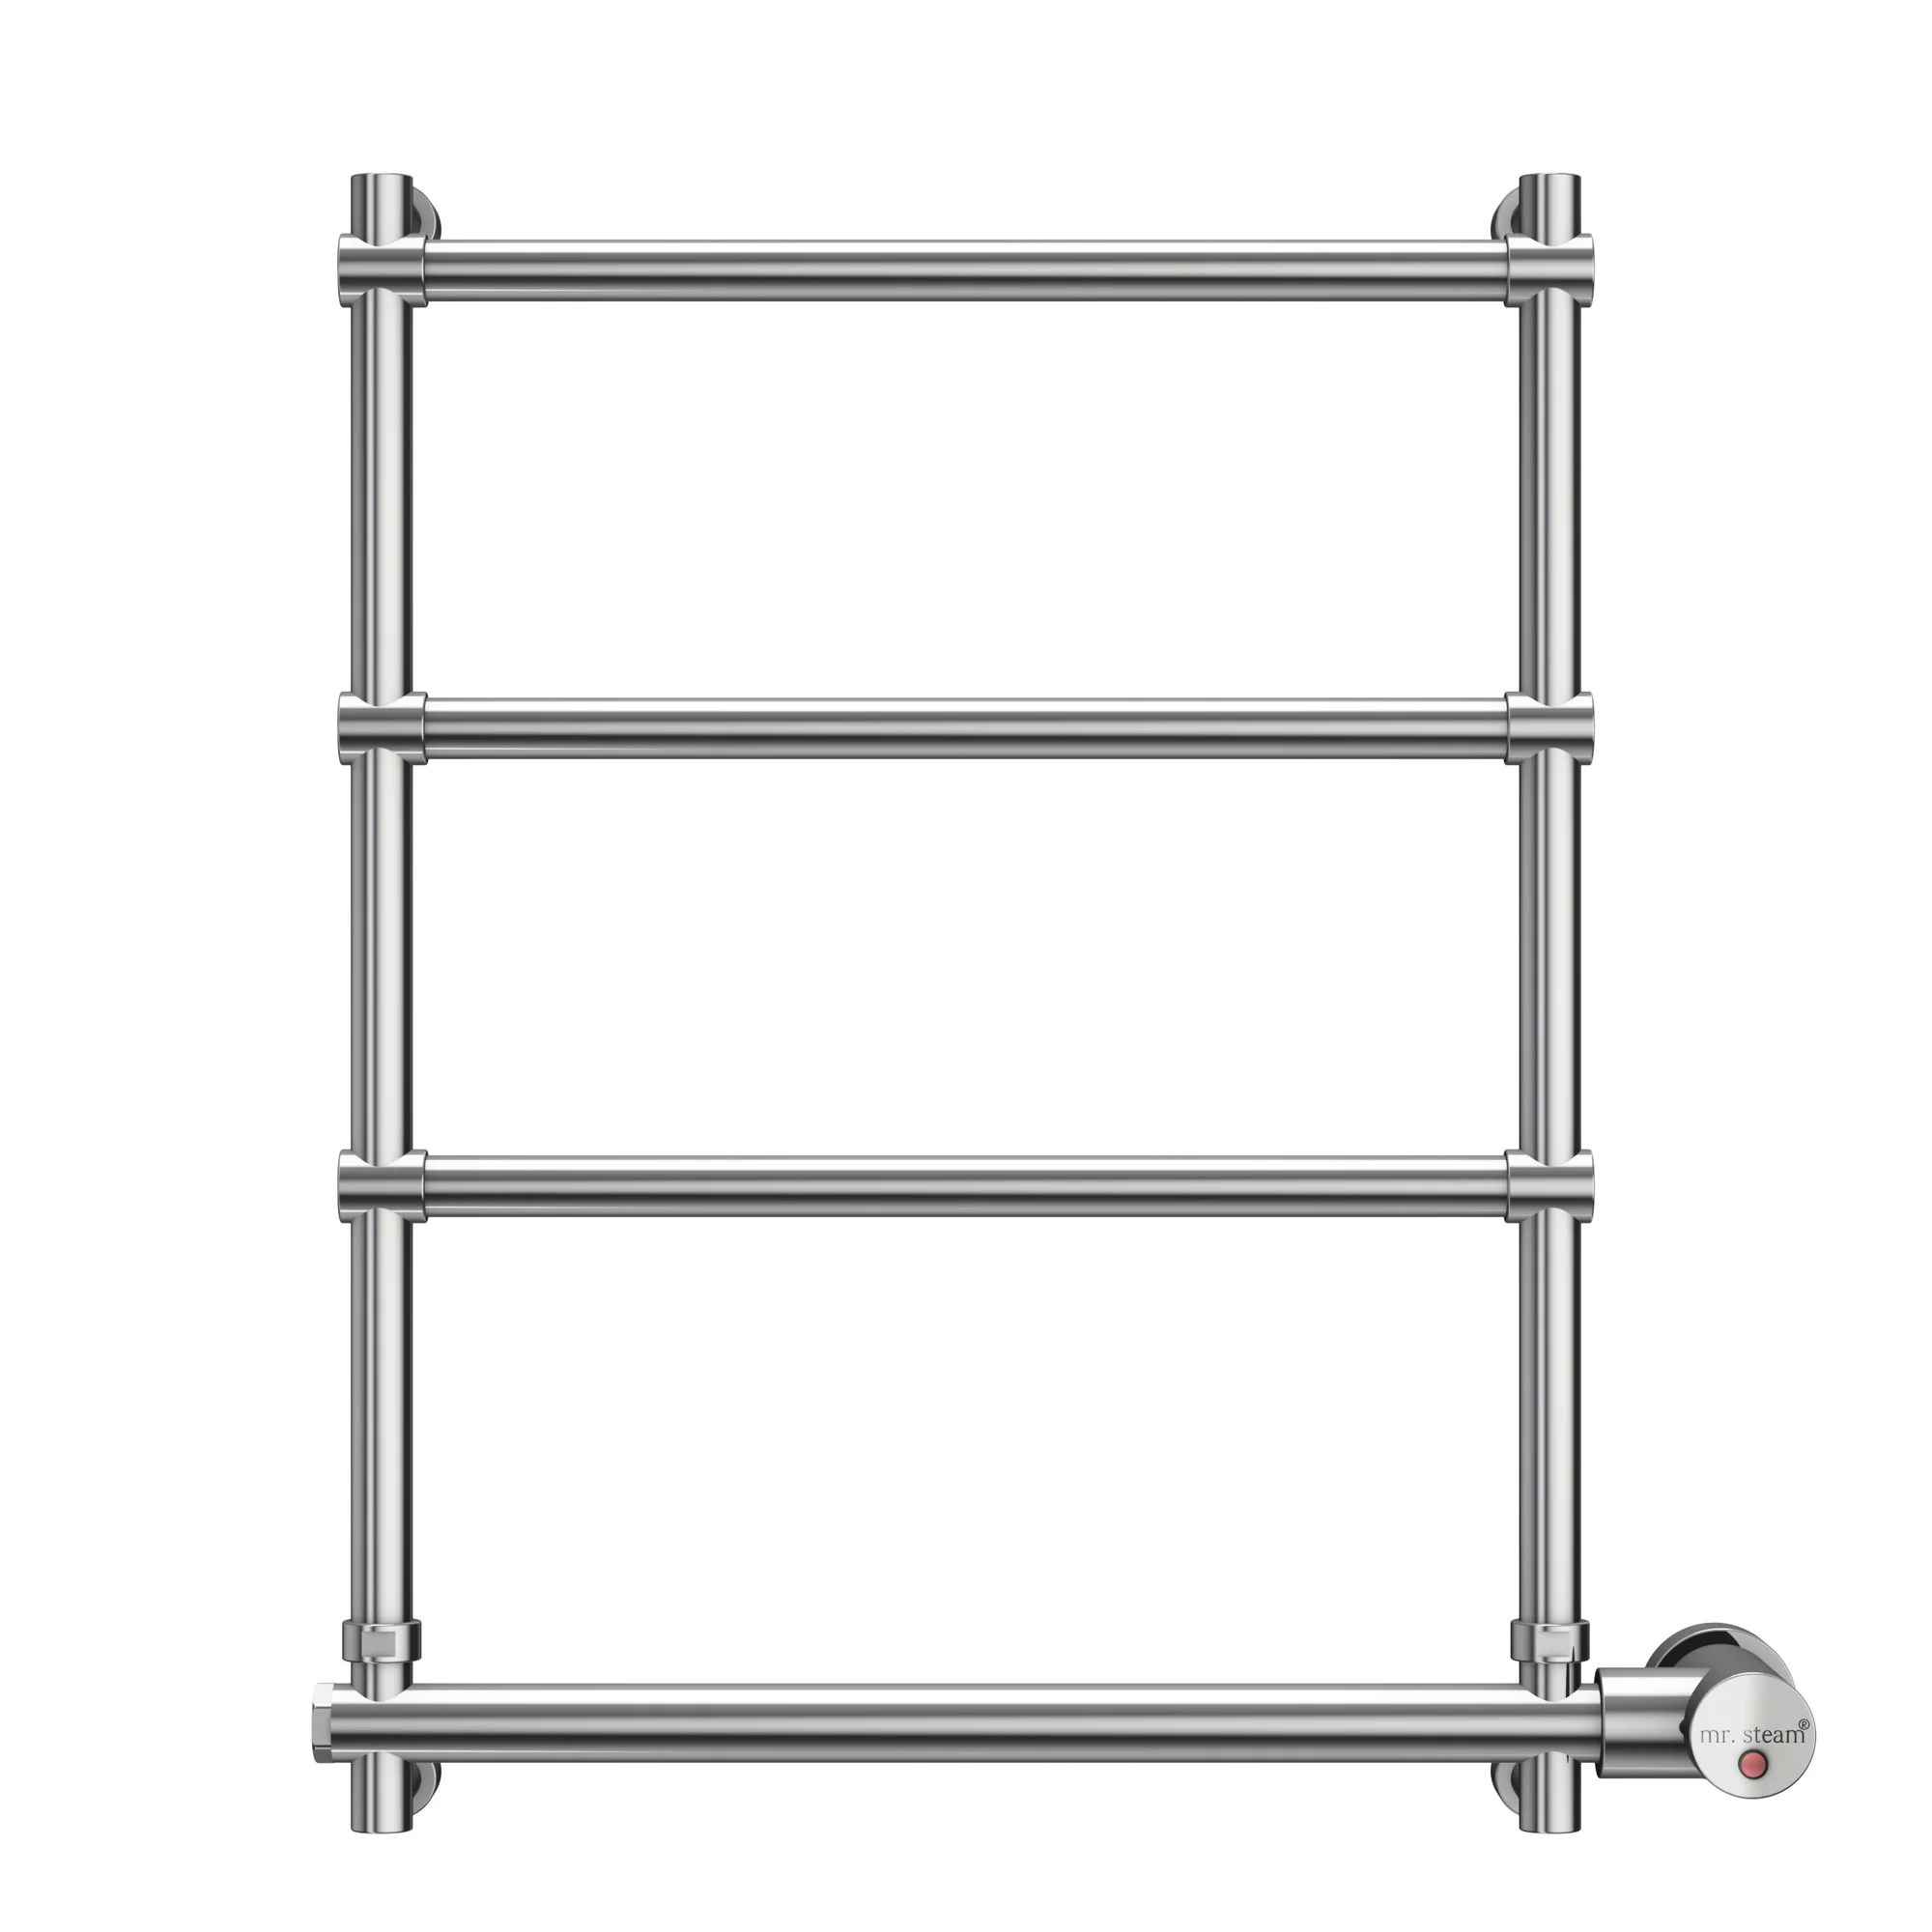 Mr. Steam Wall Mount Towel Warmer in Polished Chrome